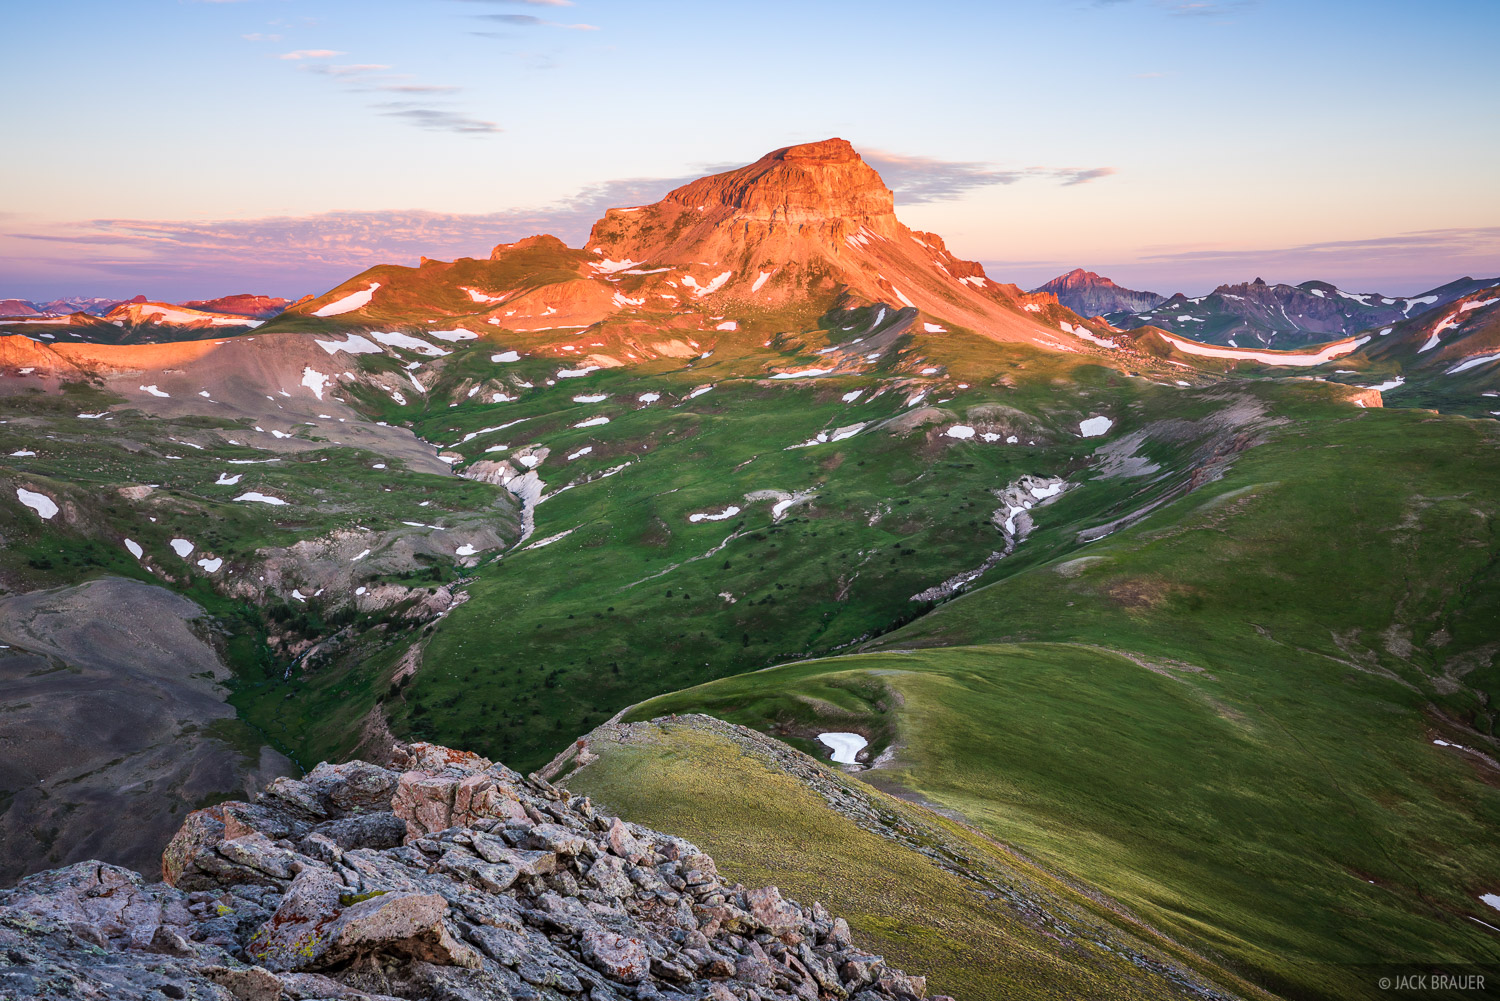 Colorado, San Juan Mountains, Uncompahgre Peak, Uncompahgre Wilderness, photo